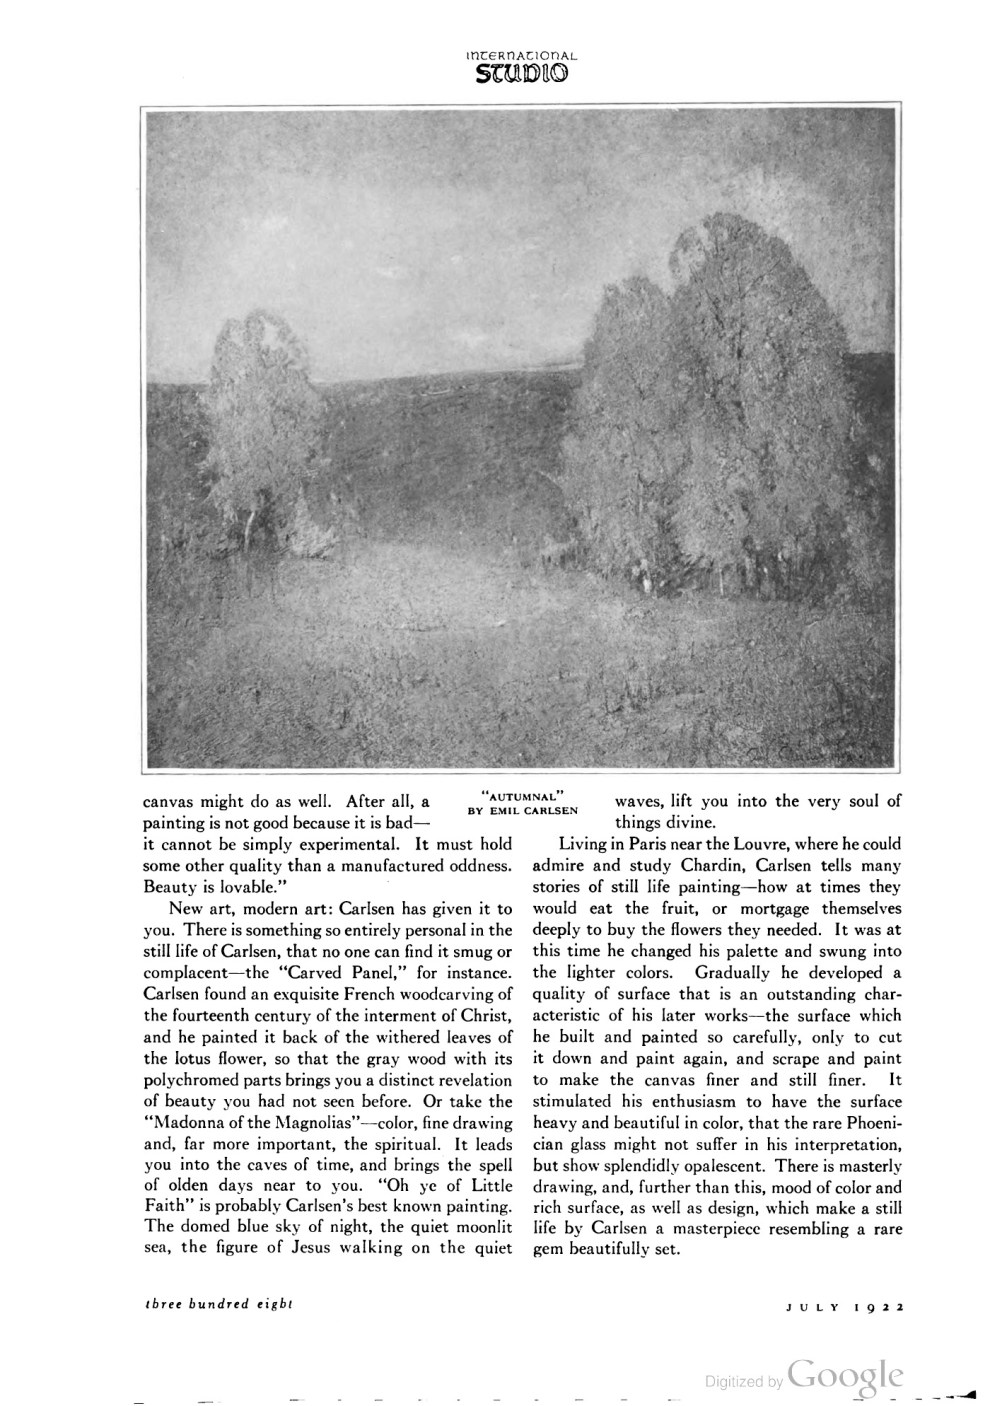 "The International Studio, ""Emil Carlsen – Painter, Teacher"" by F. Newlin Price, July, 1922, Volume 75, Number 302, pg. 300-308"